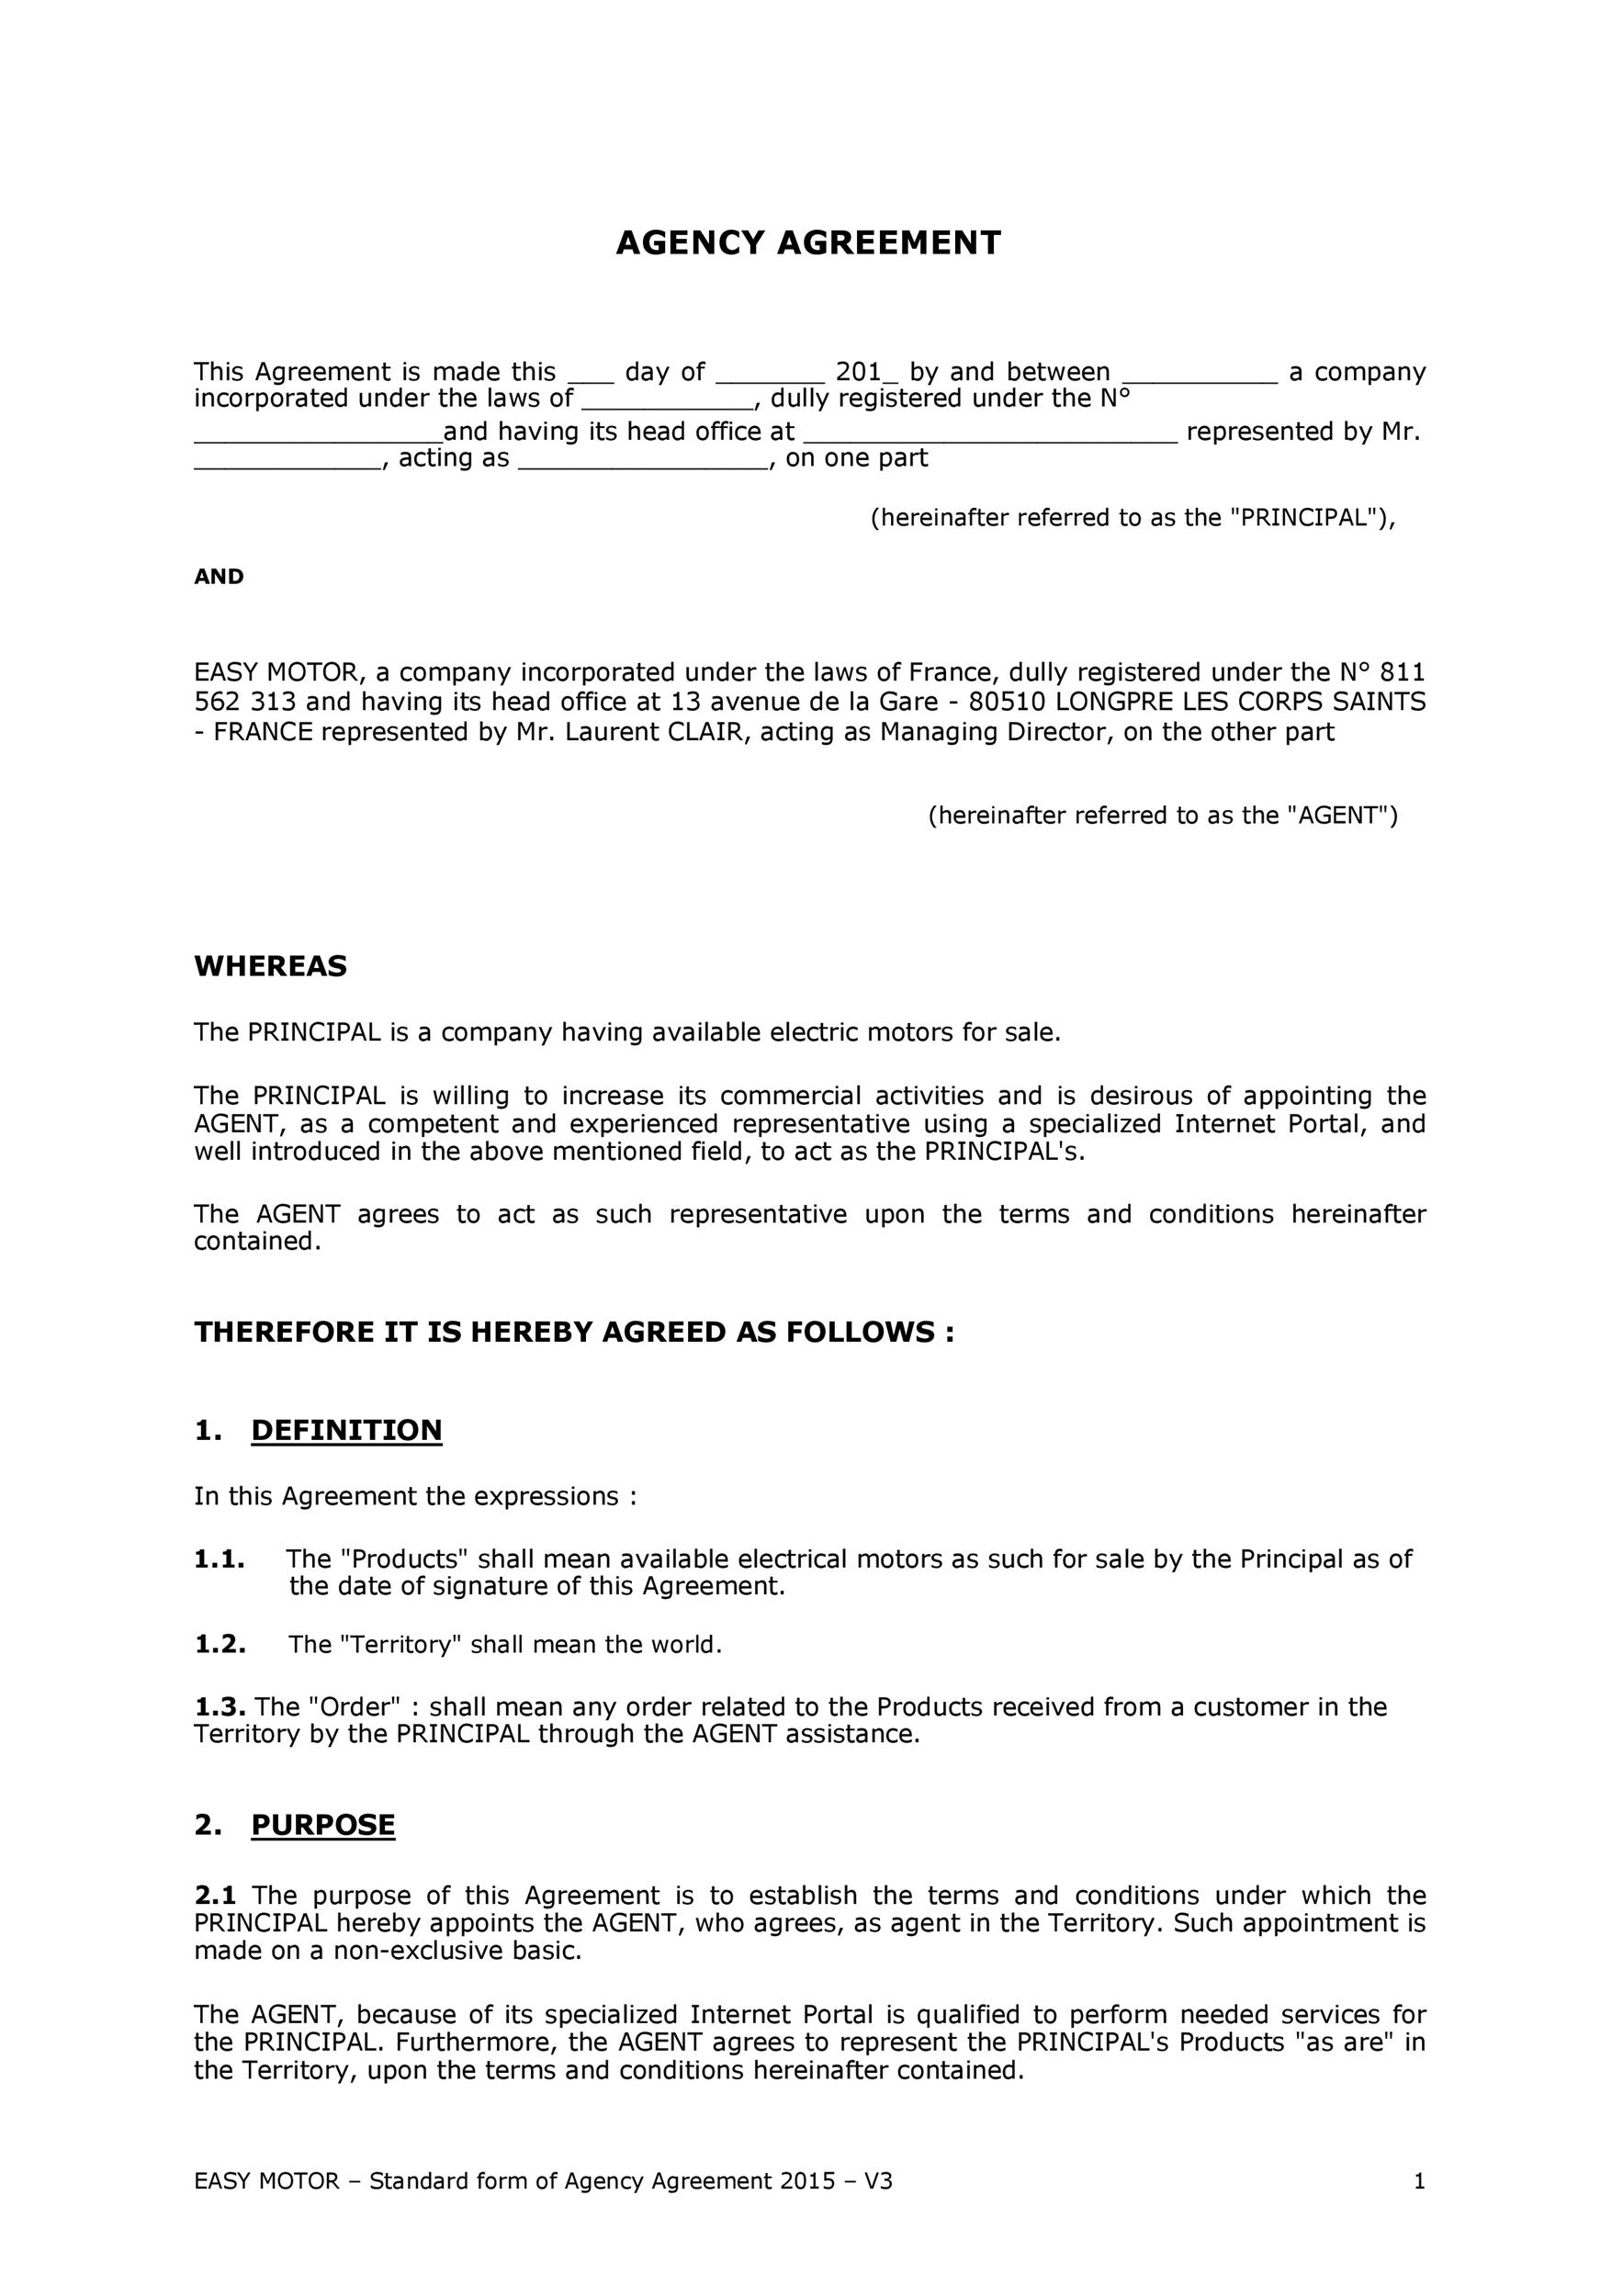 Free agency agreement 15